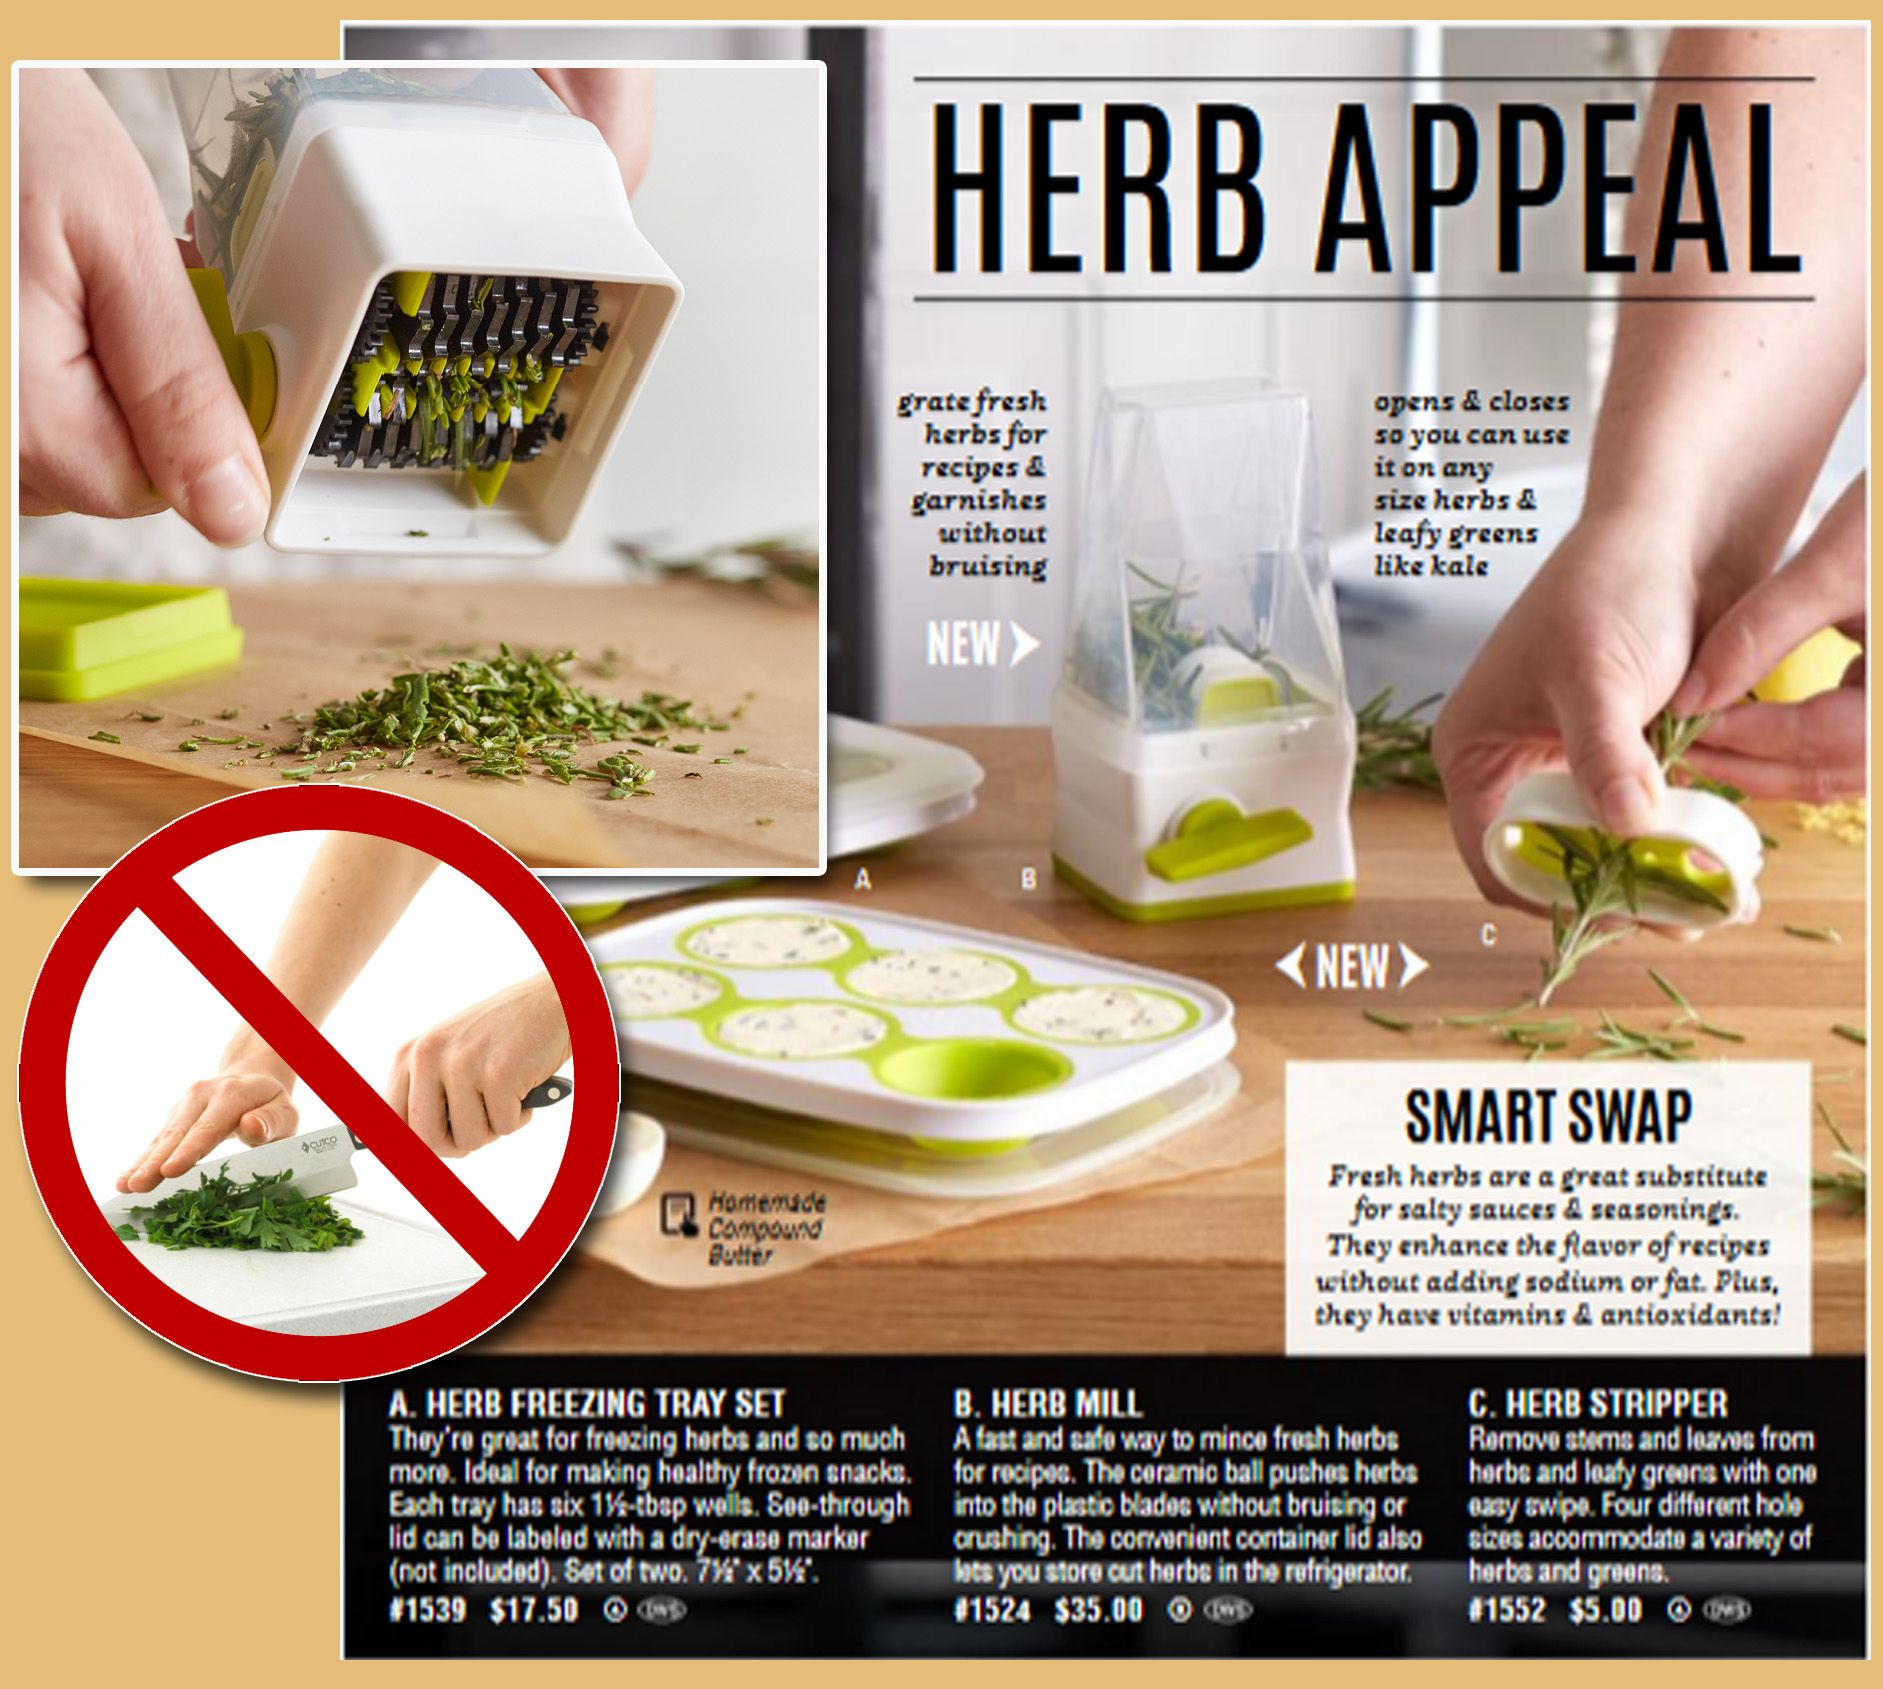 Chefs buying fresh herbs - Pampered Chef New Spring Products Herb Stripper Herb Mill Herb Freezing Tray